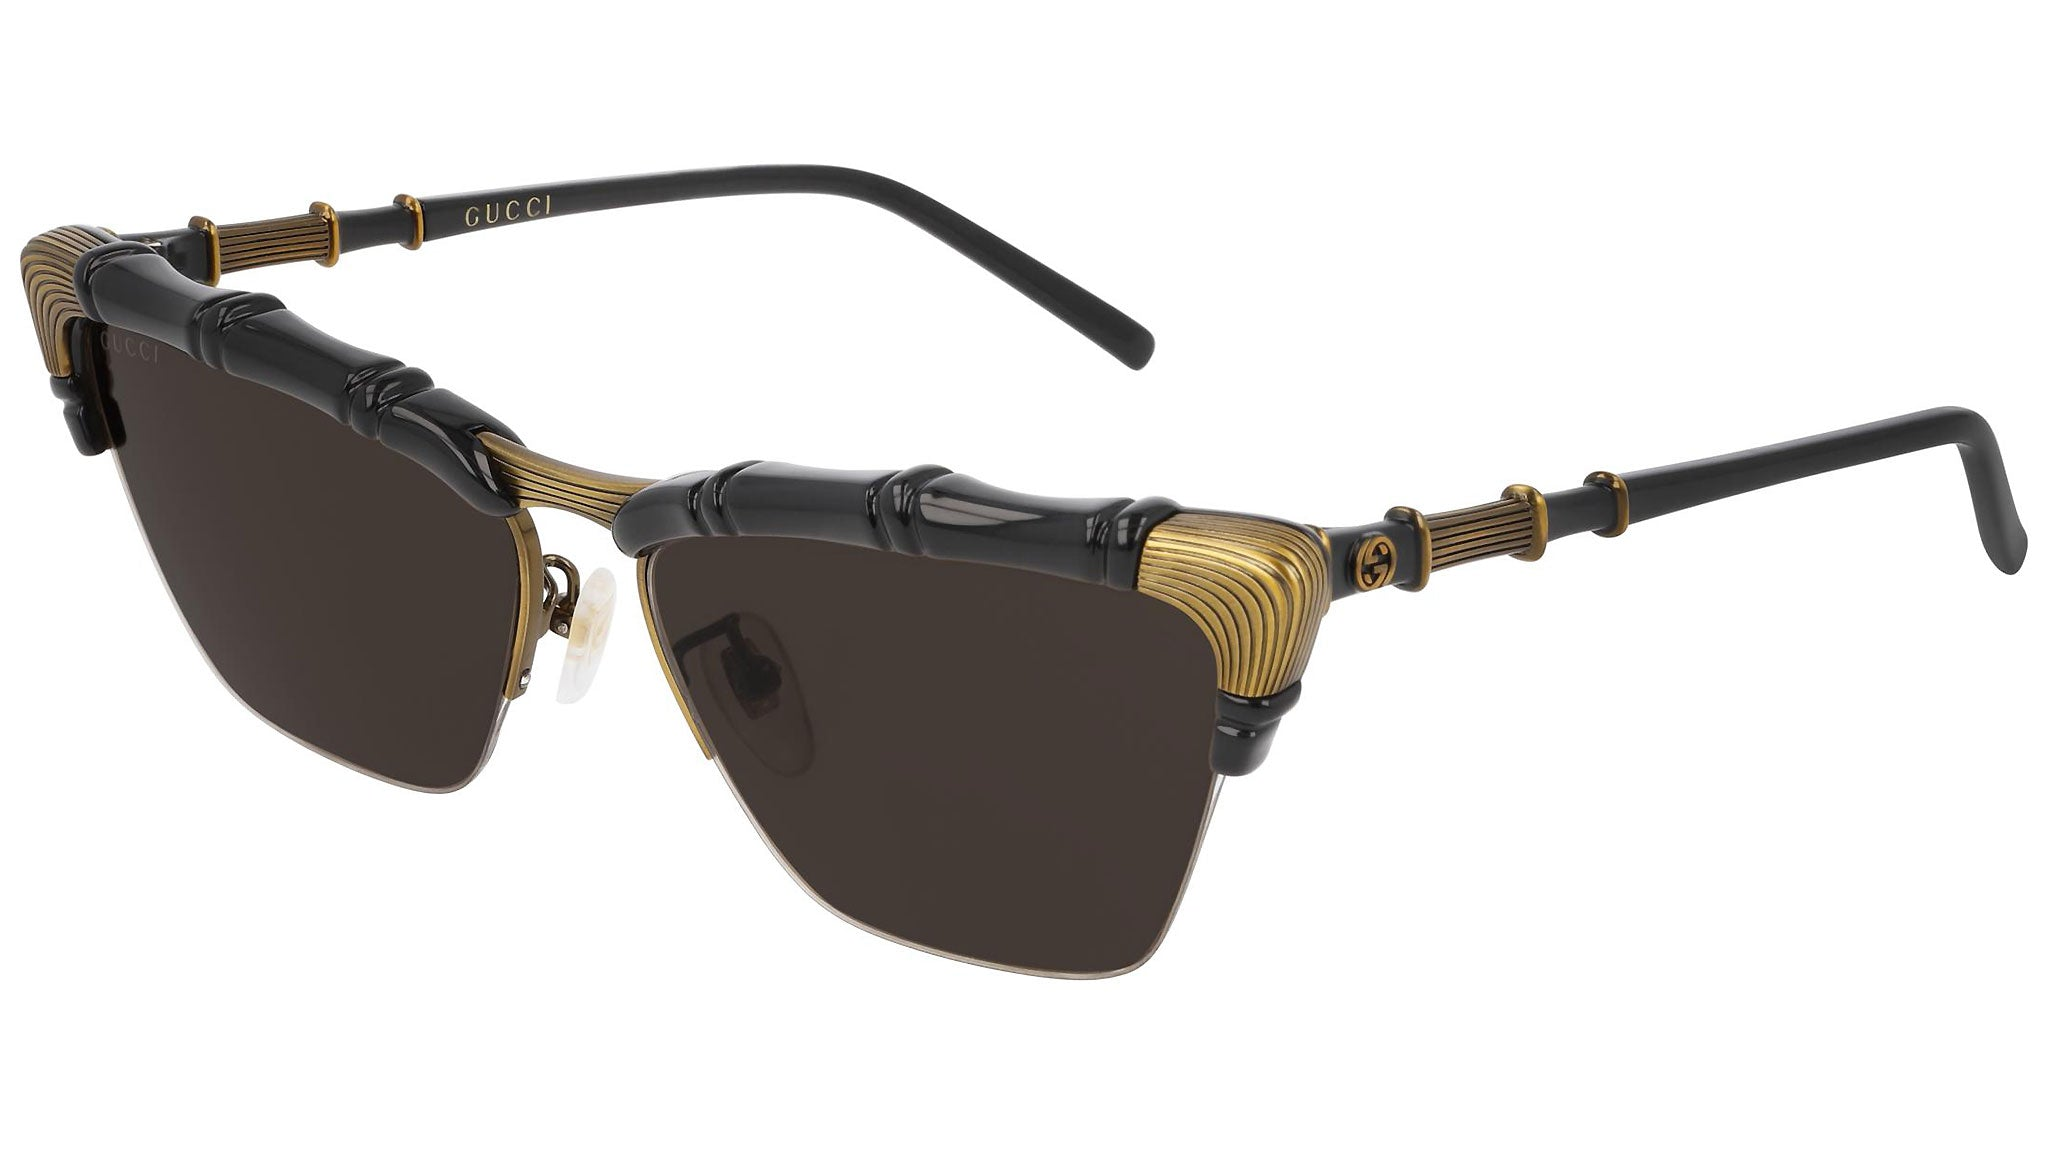 GG0660S gold black and brown